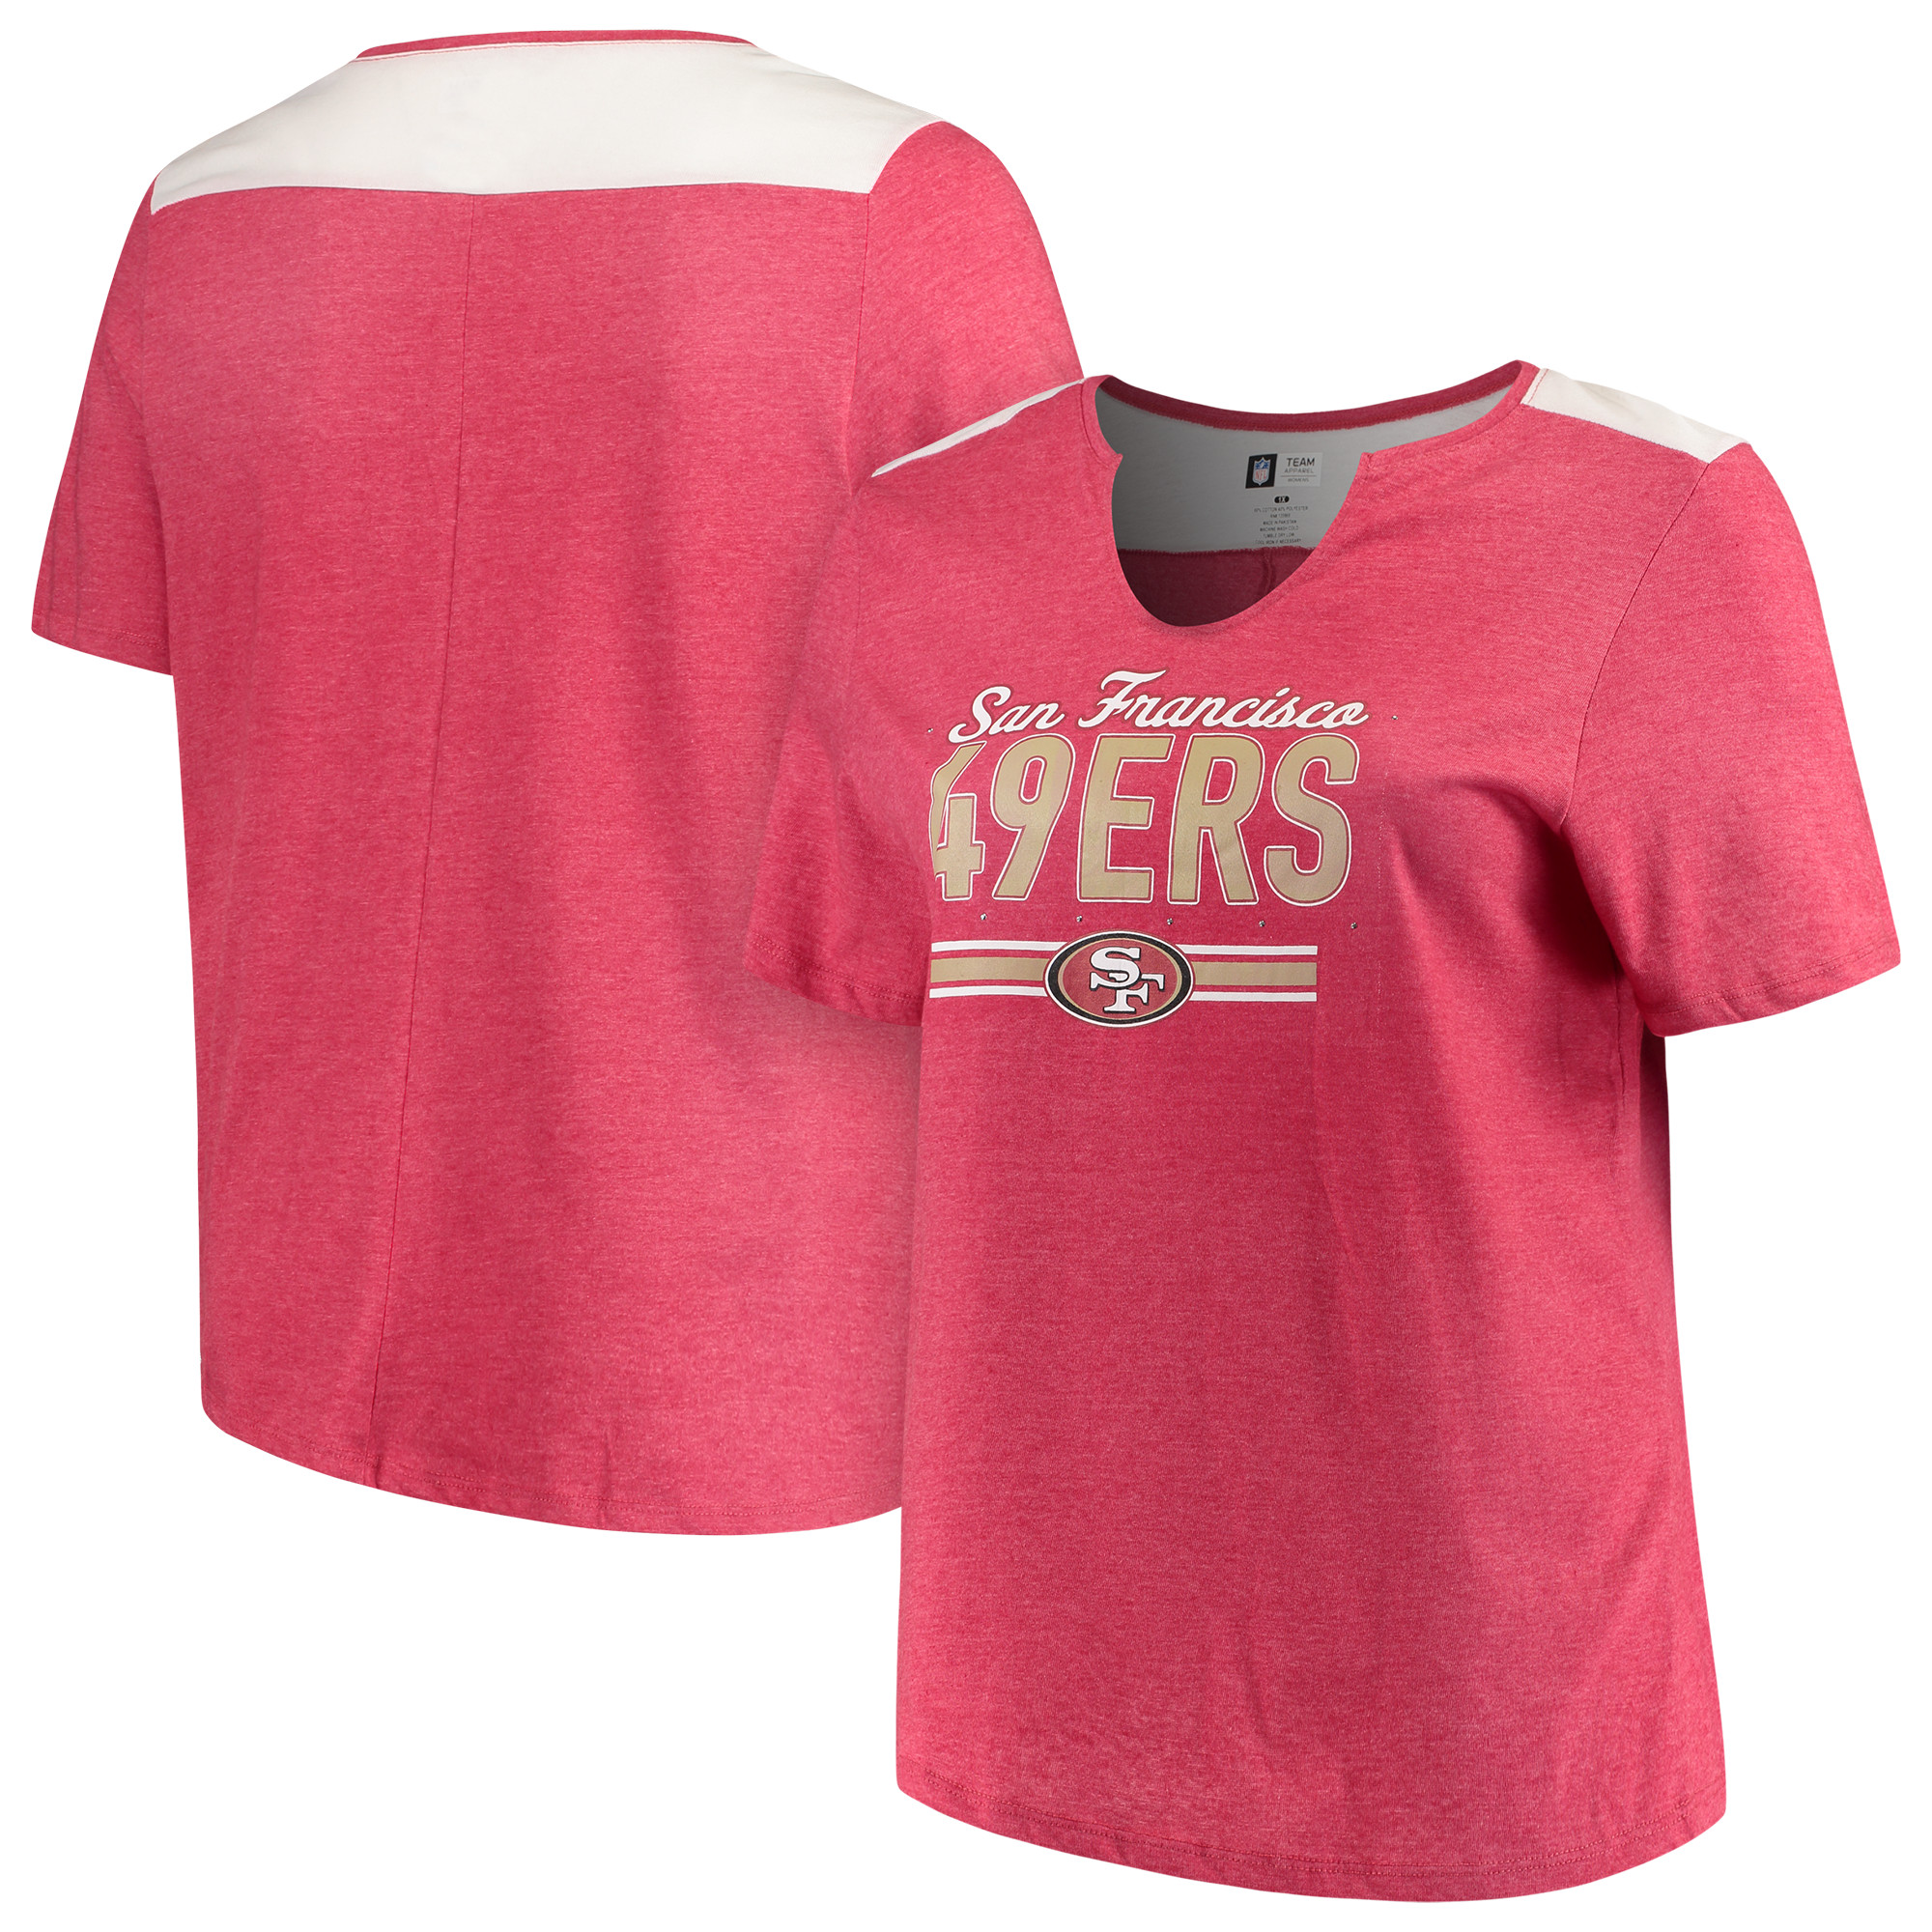 San Francisco 49ers Majestic Women's Notch Neck Plus Size T-Shirt - Heathered Scarlet